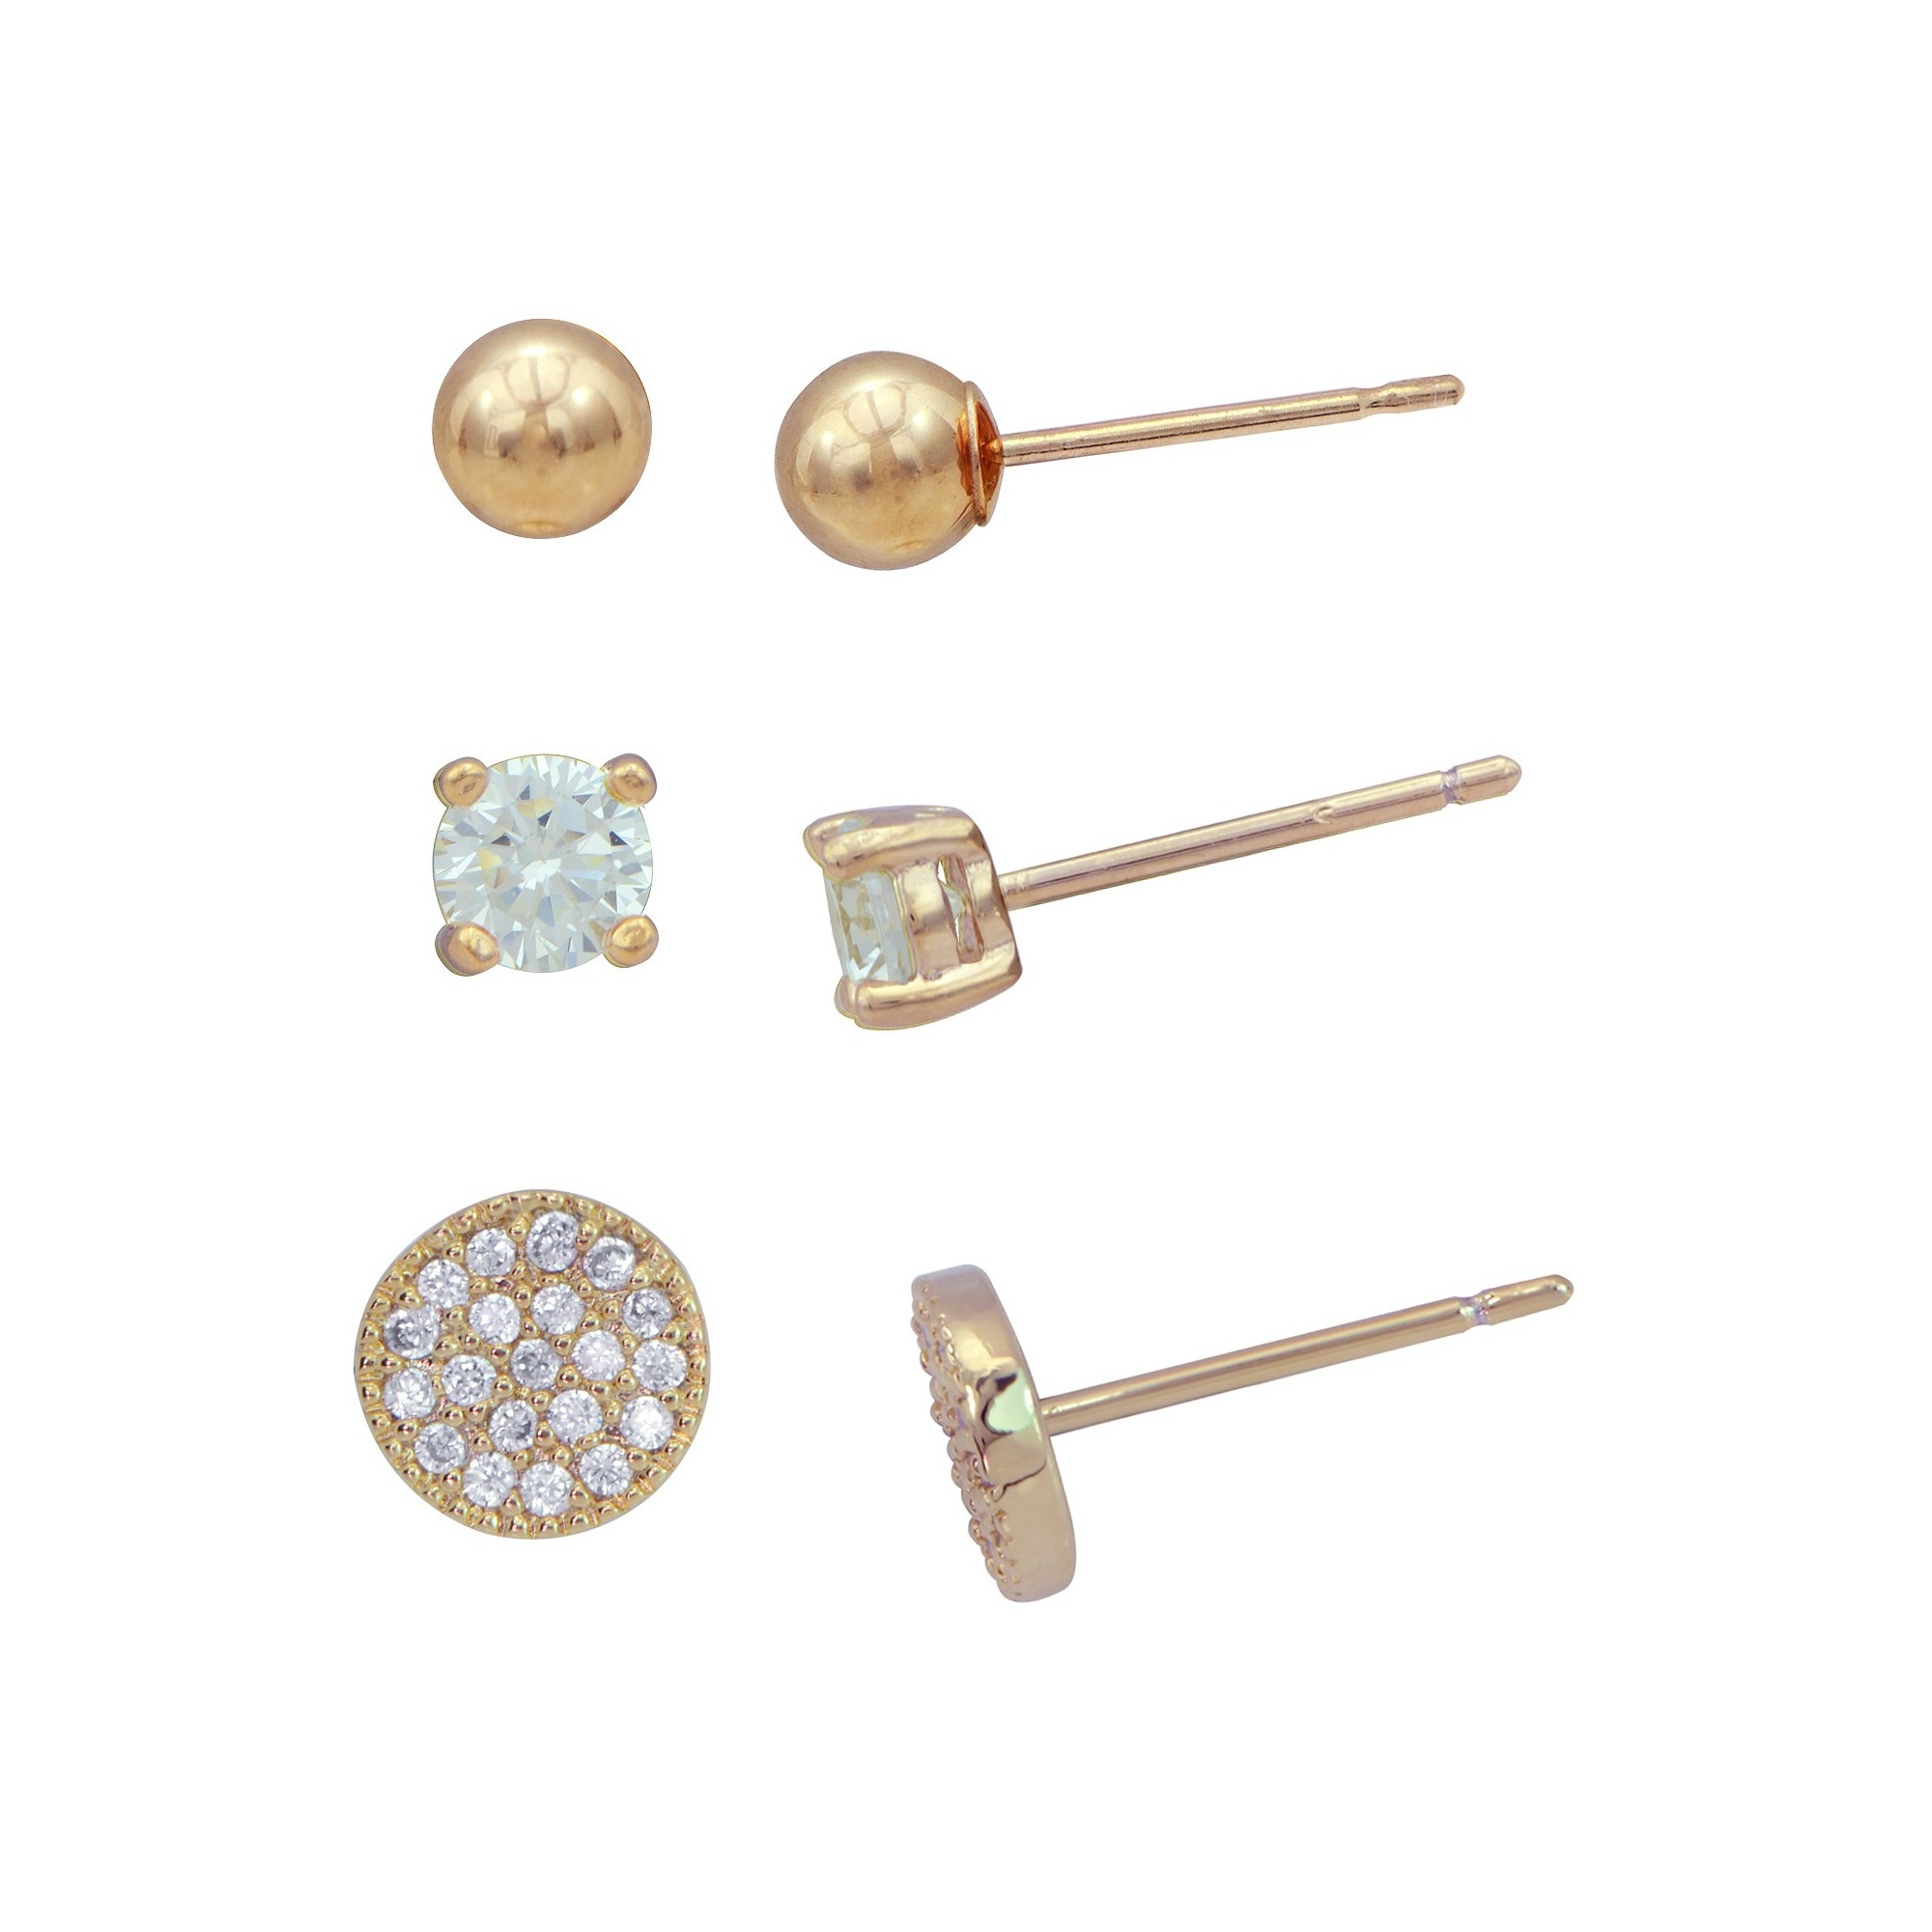 Earring Set Plated Cubic Zirconia/Ball/Pave Disc - 3pk - Gold/Clear, Women's, Gold Clear